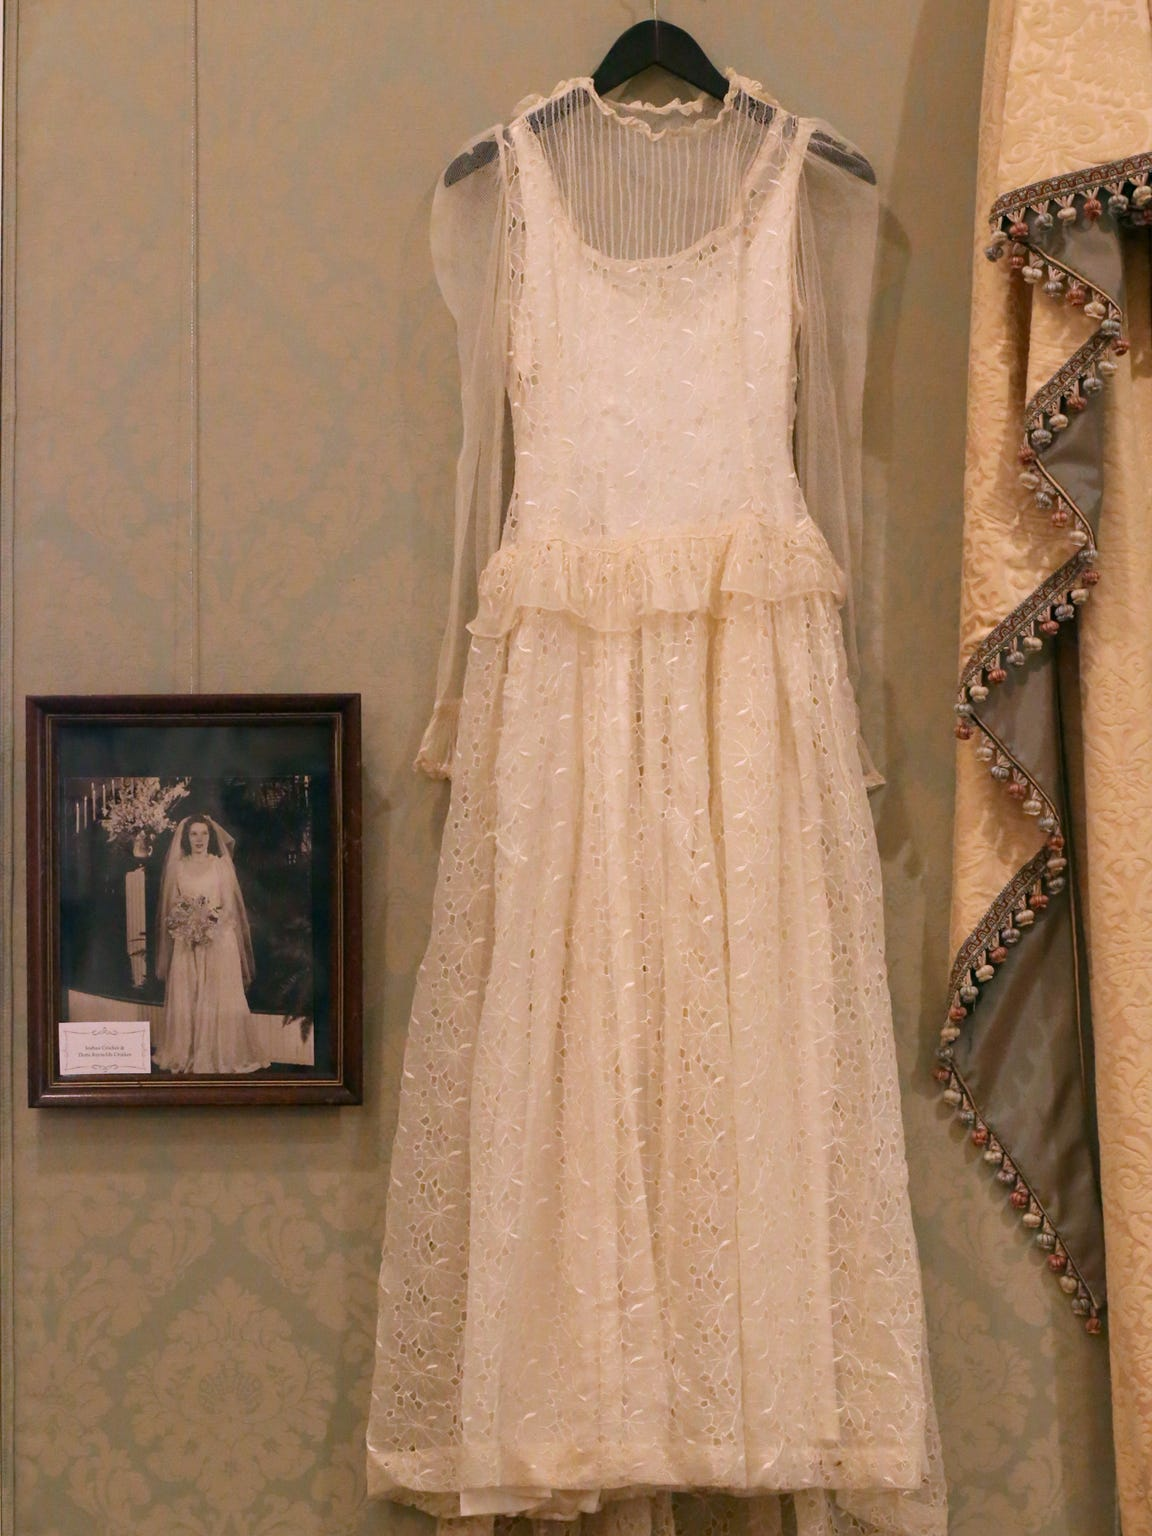 The late Doris Reynolds Crocker wore a handmade dress